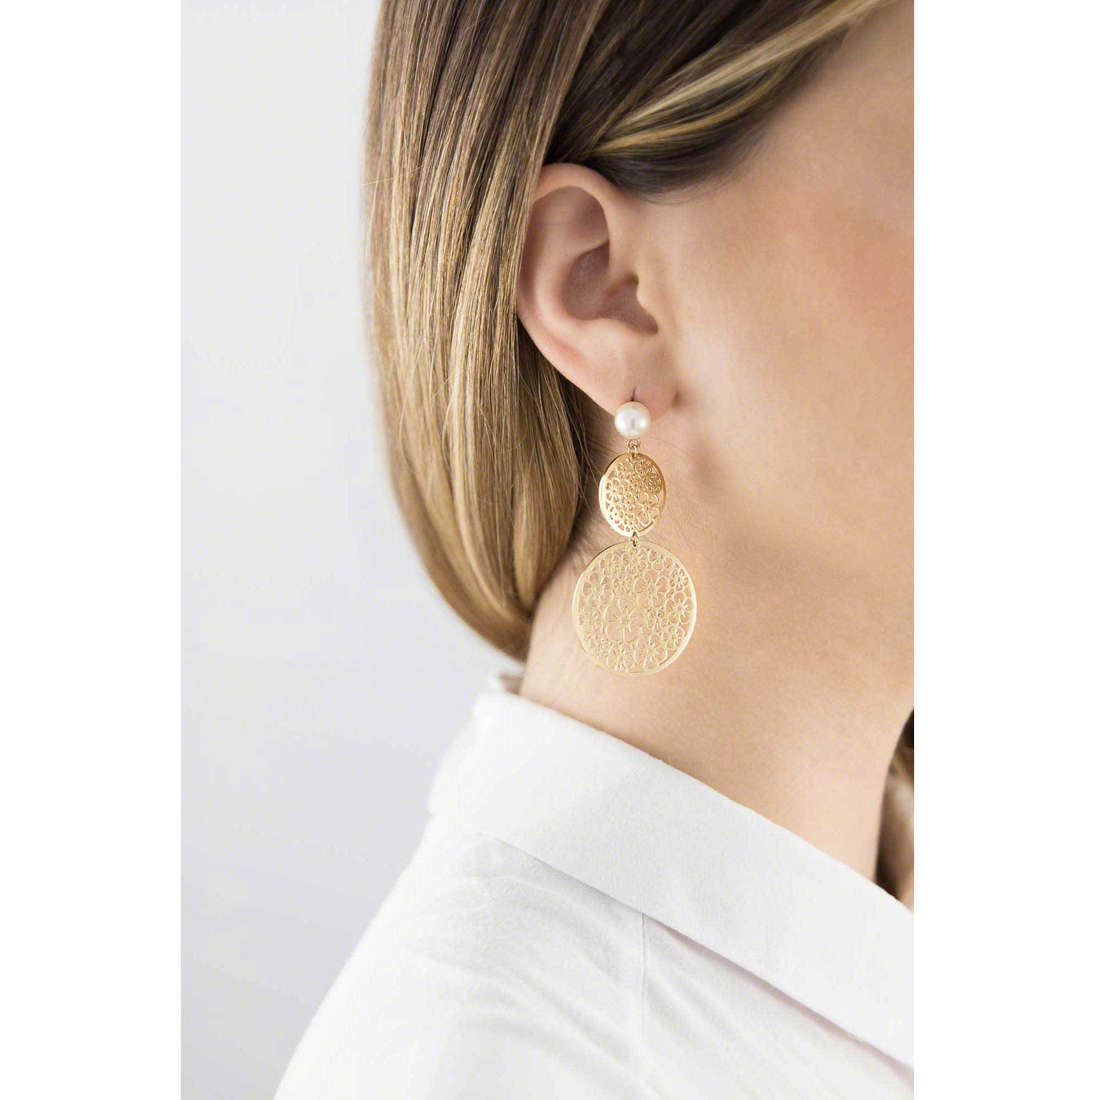 Brosway boucles d'oreille Mademoiselle femme BIS21 indosso